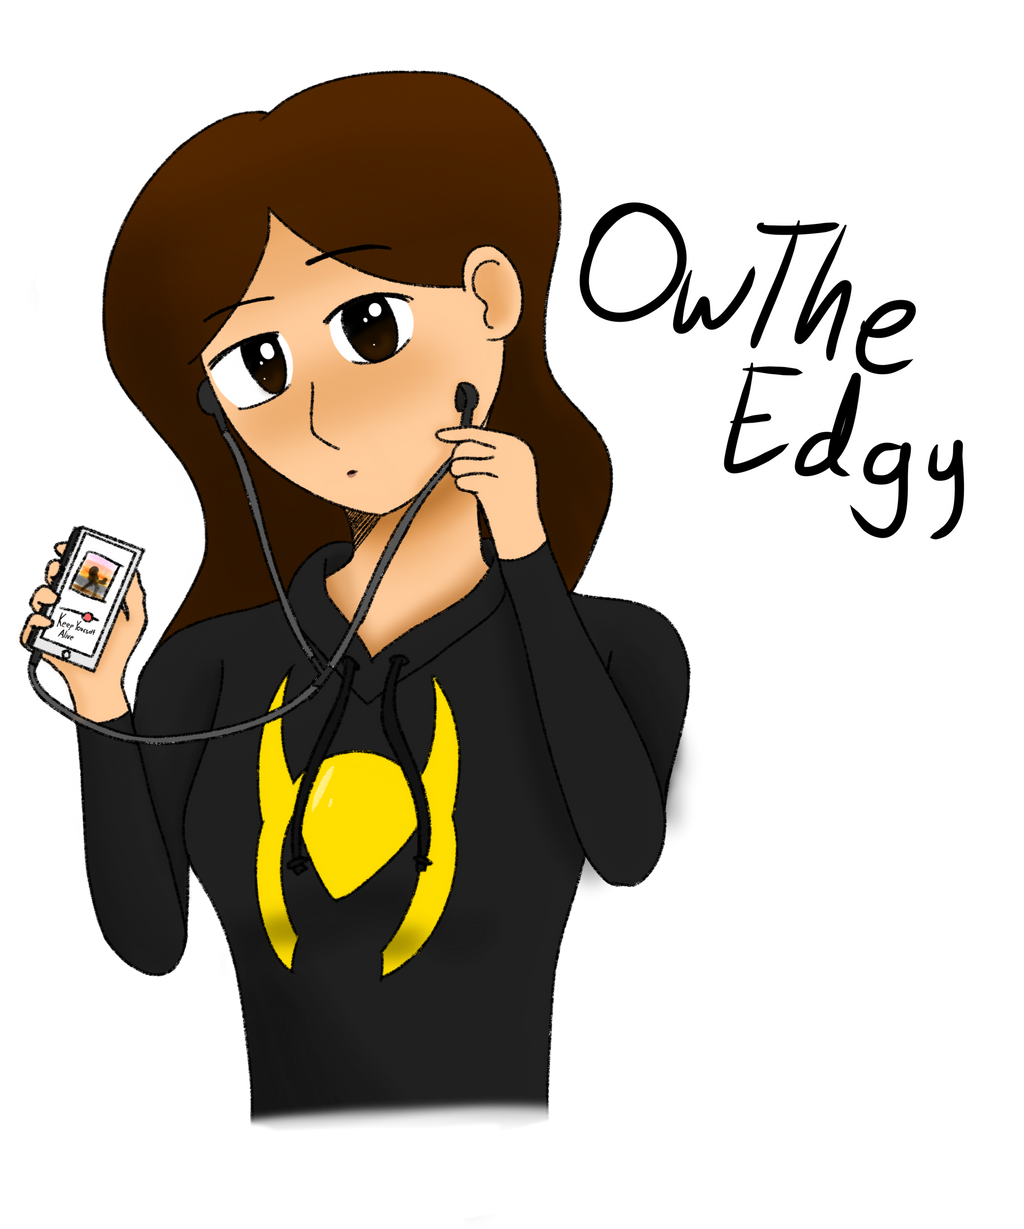 OwTheEdgy's Profile Picture